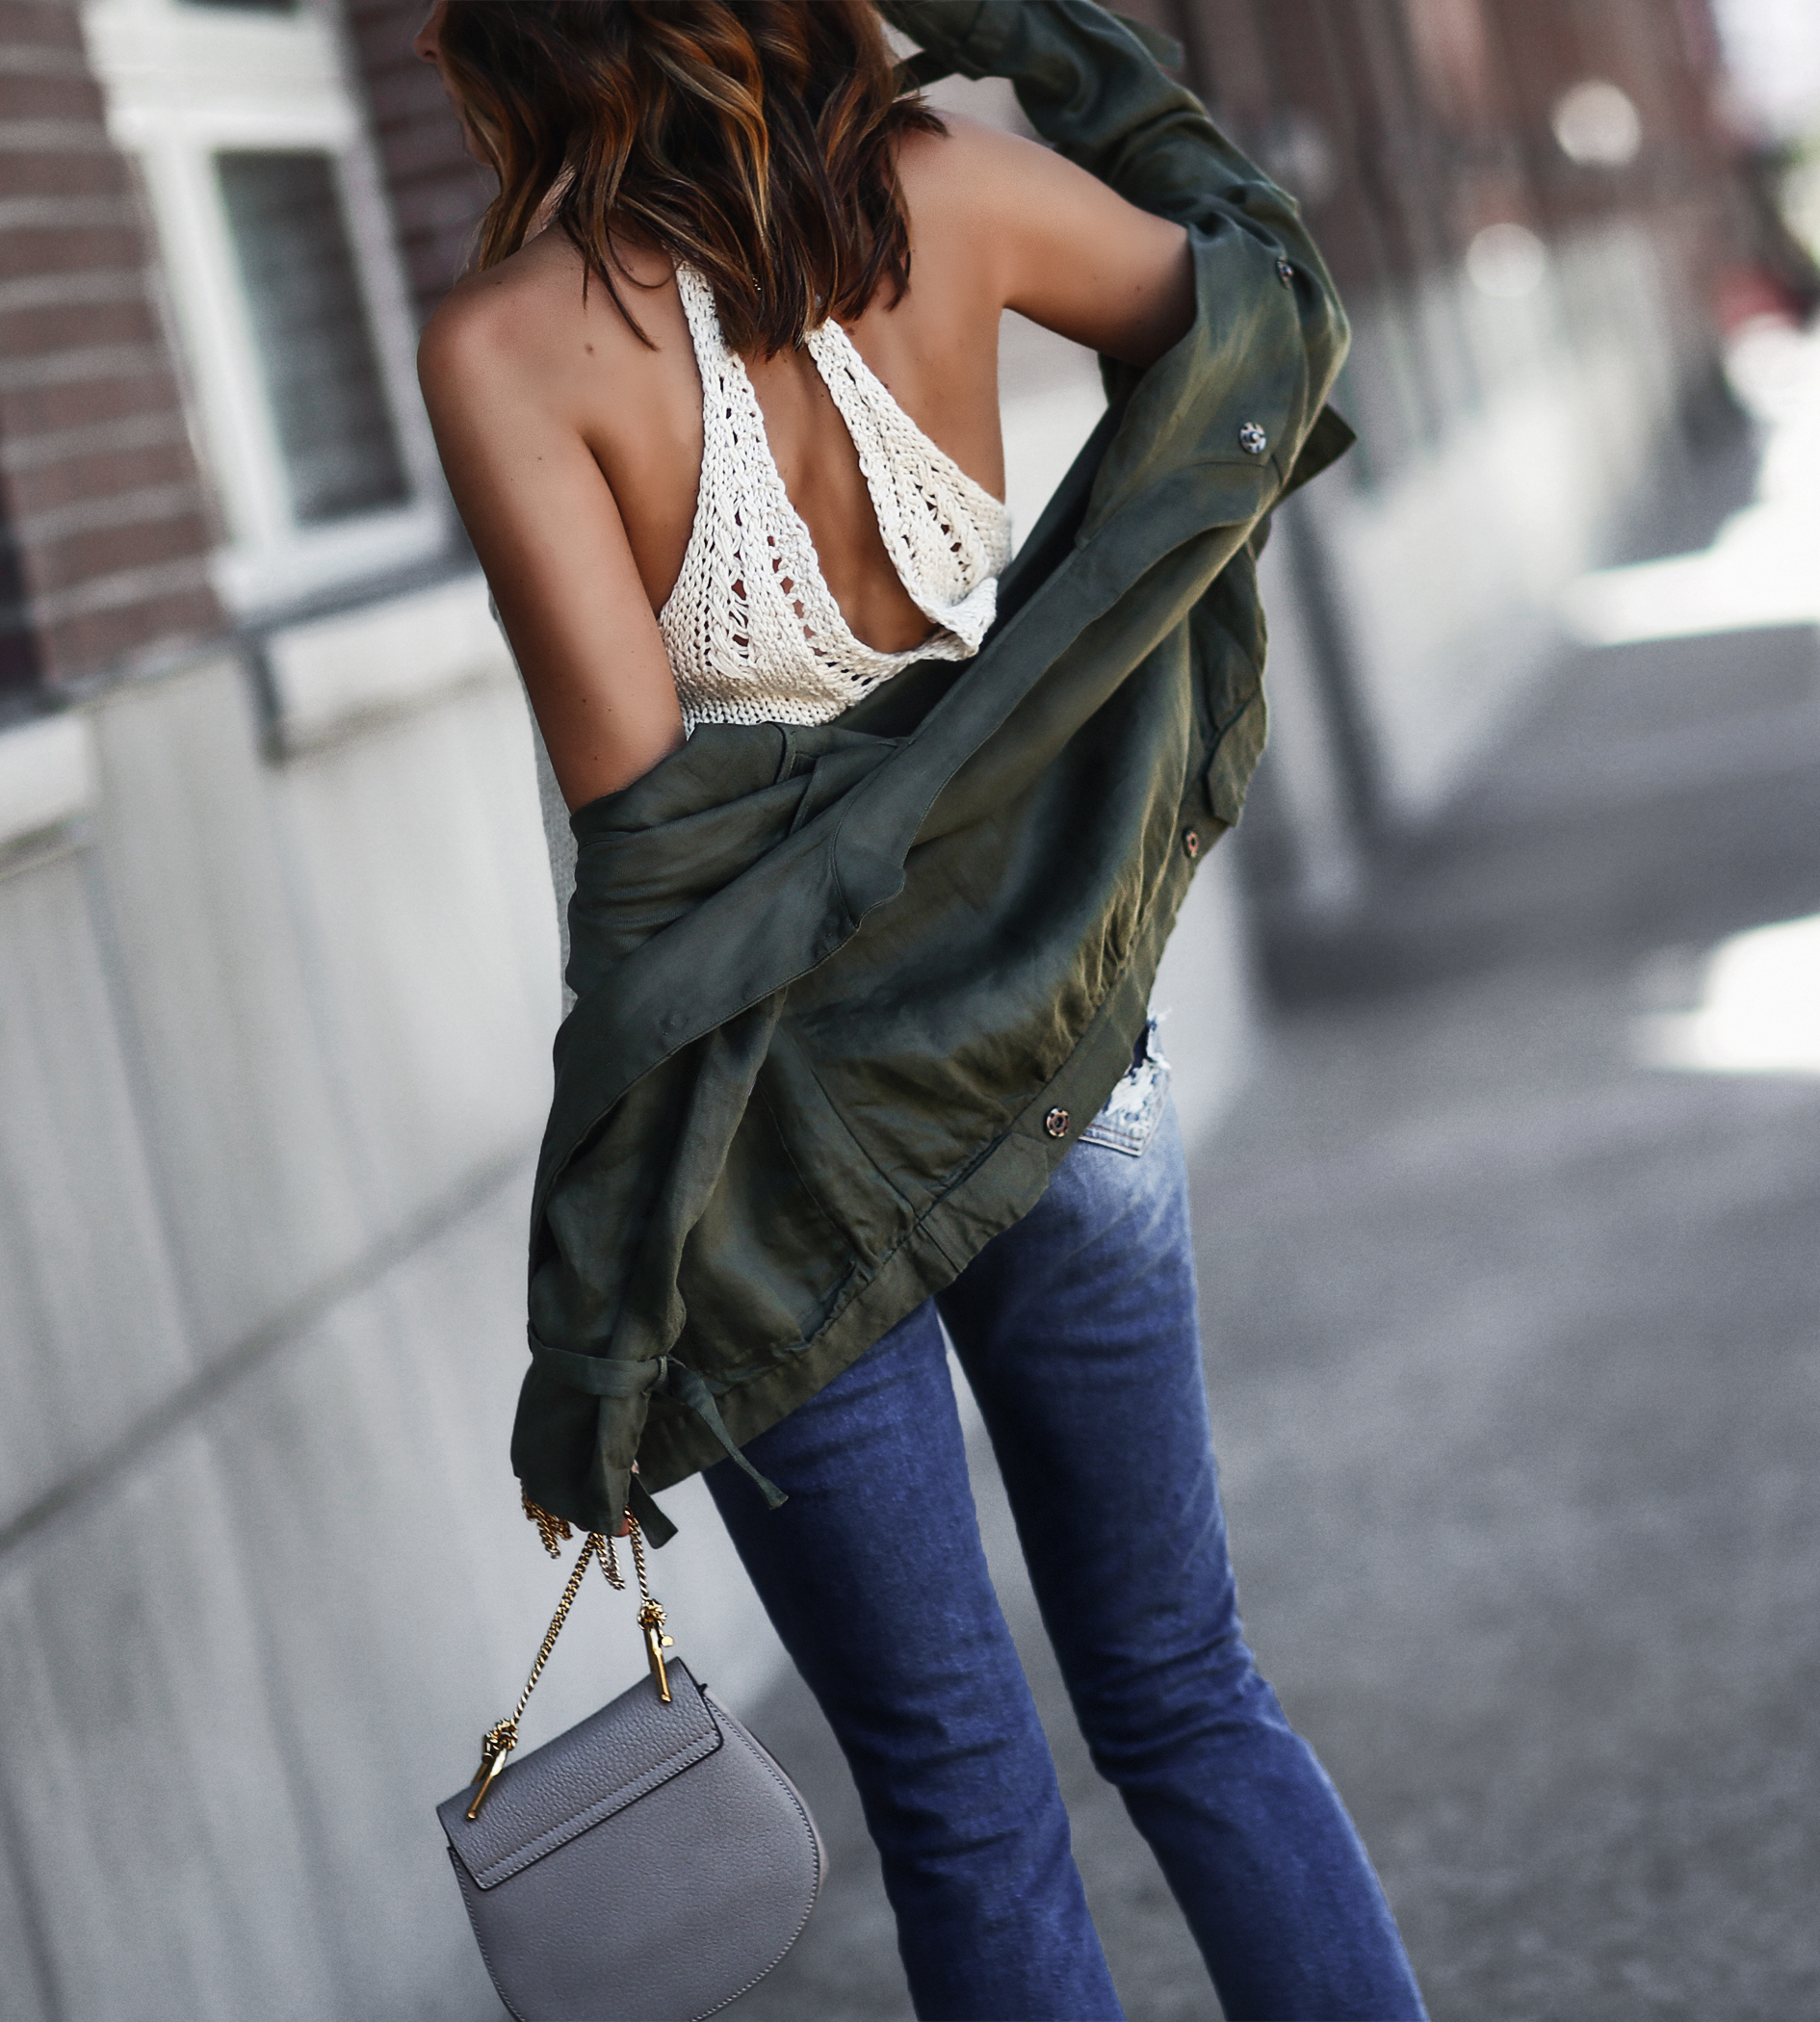 white knit tank top, army green jacket, distressed jeans